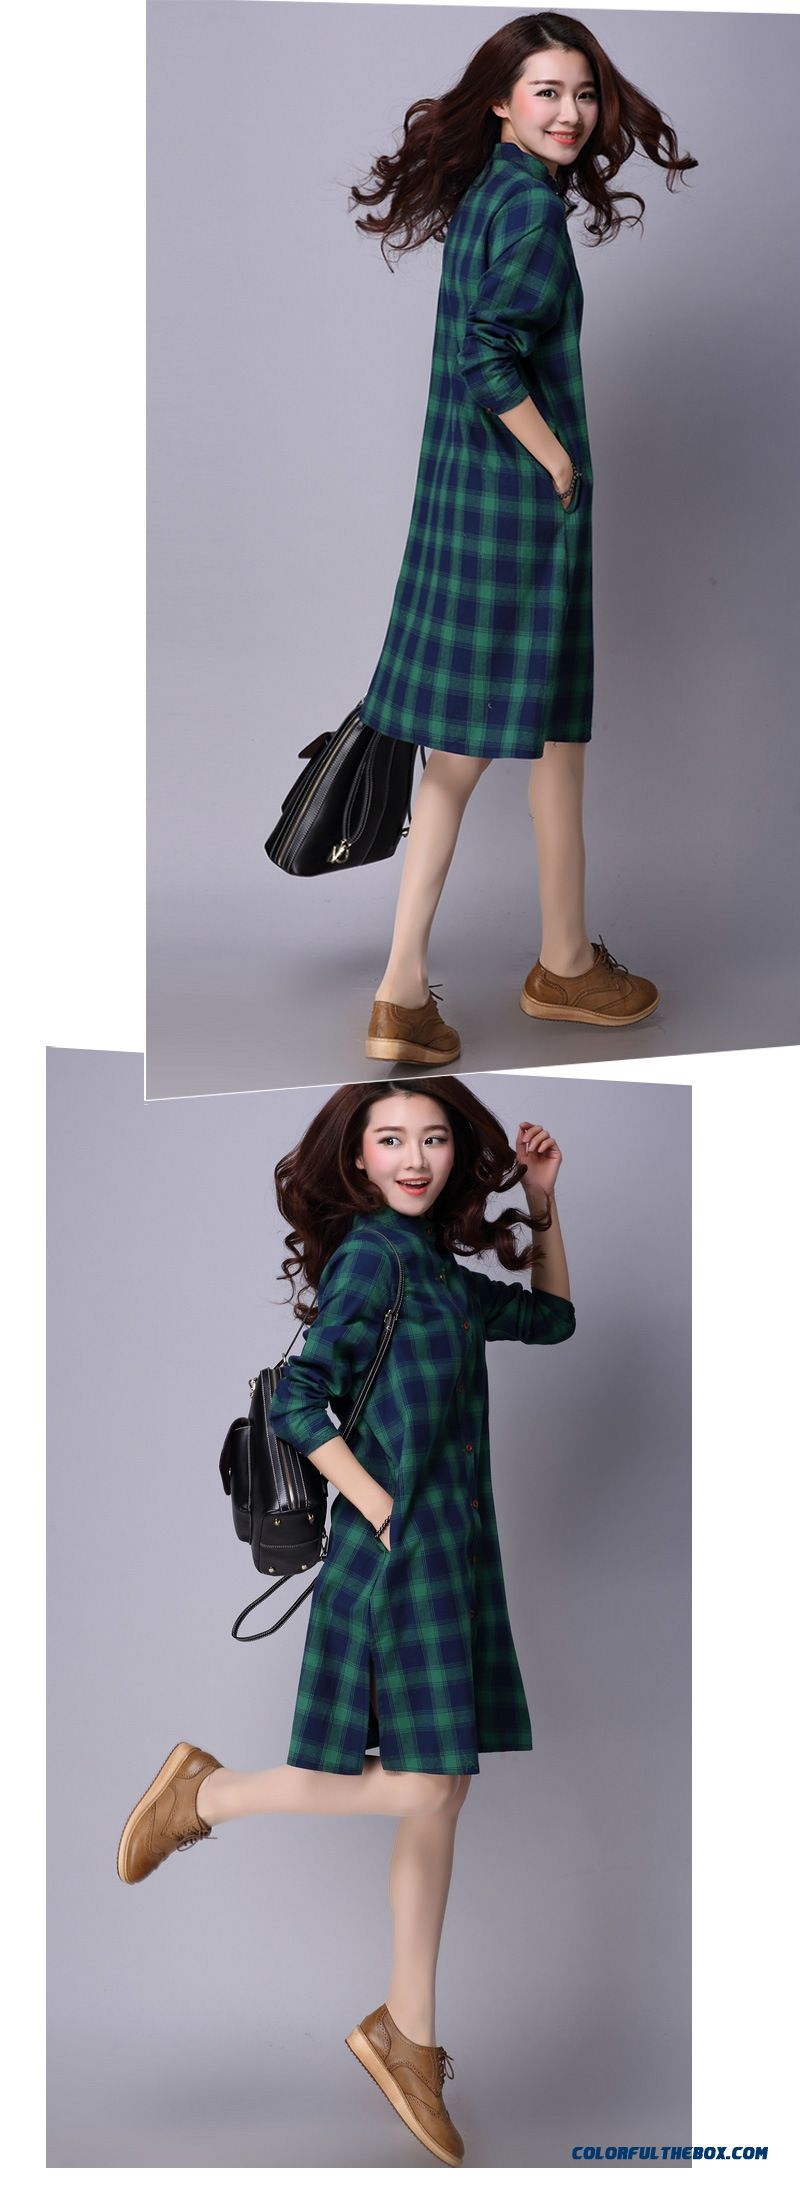 528c2cf843d ... New Women's Fashion Flax Loose Medium-long Shirt Standing Collar Shirt  - detail images ...